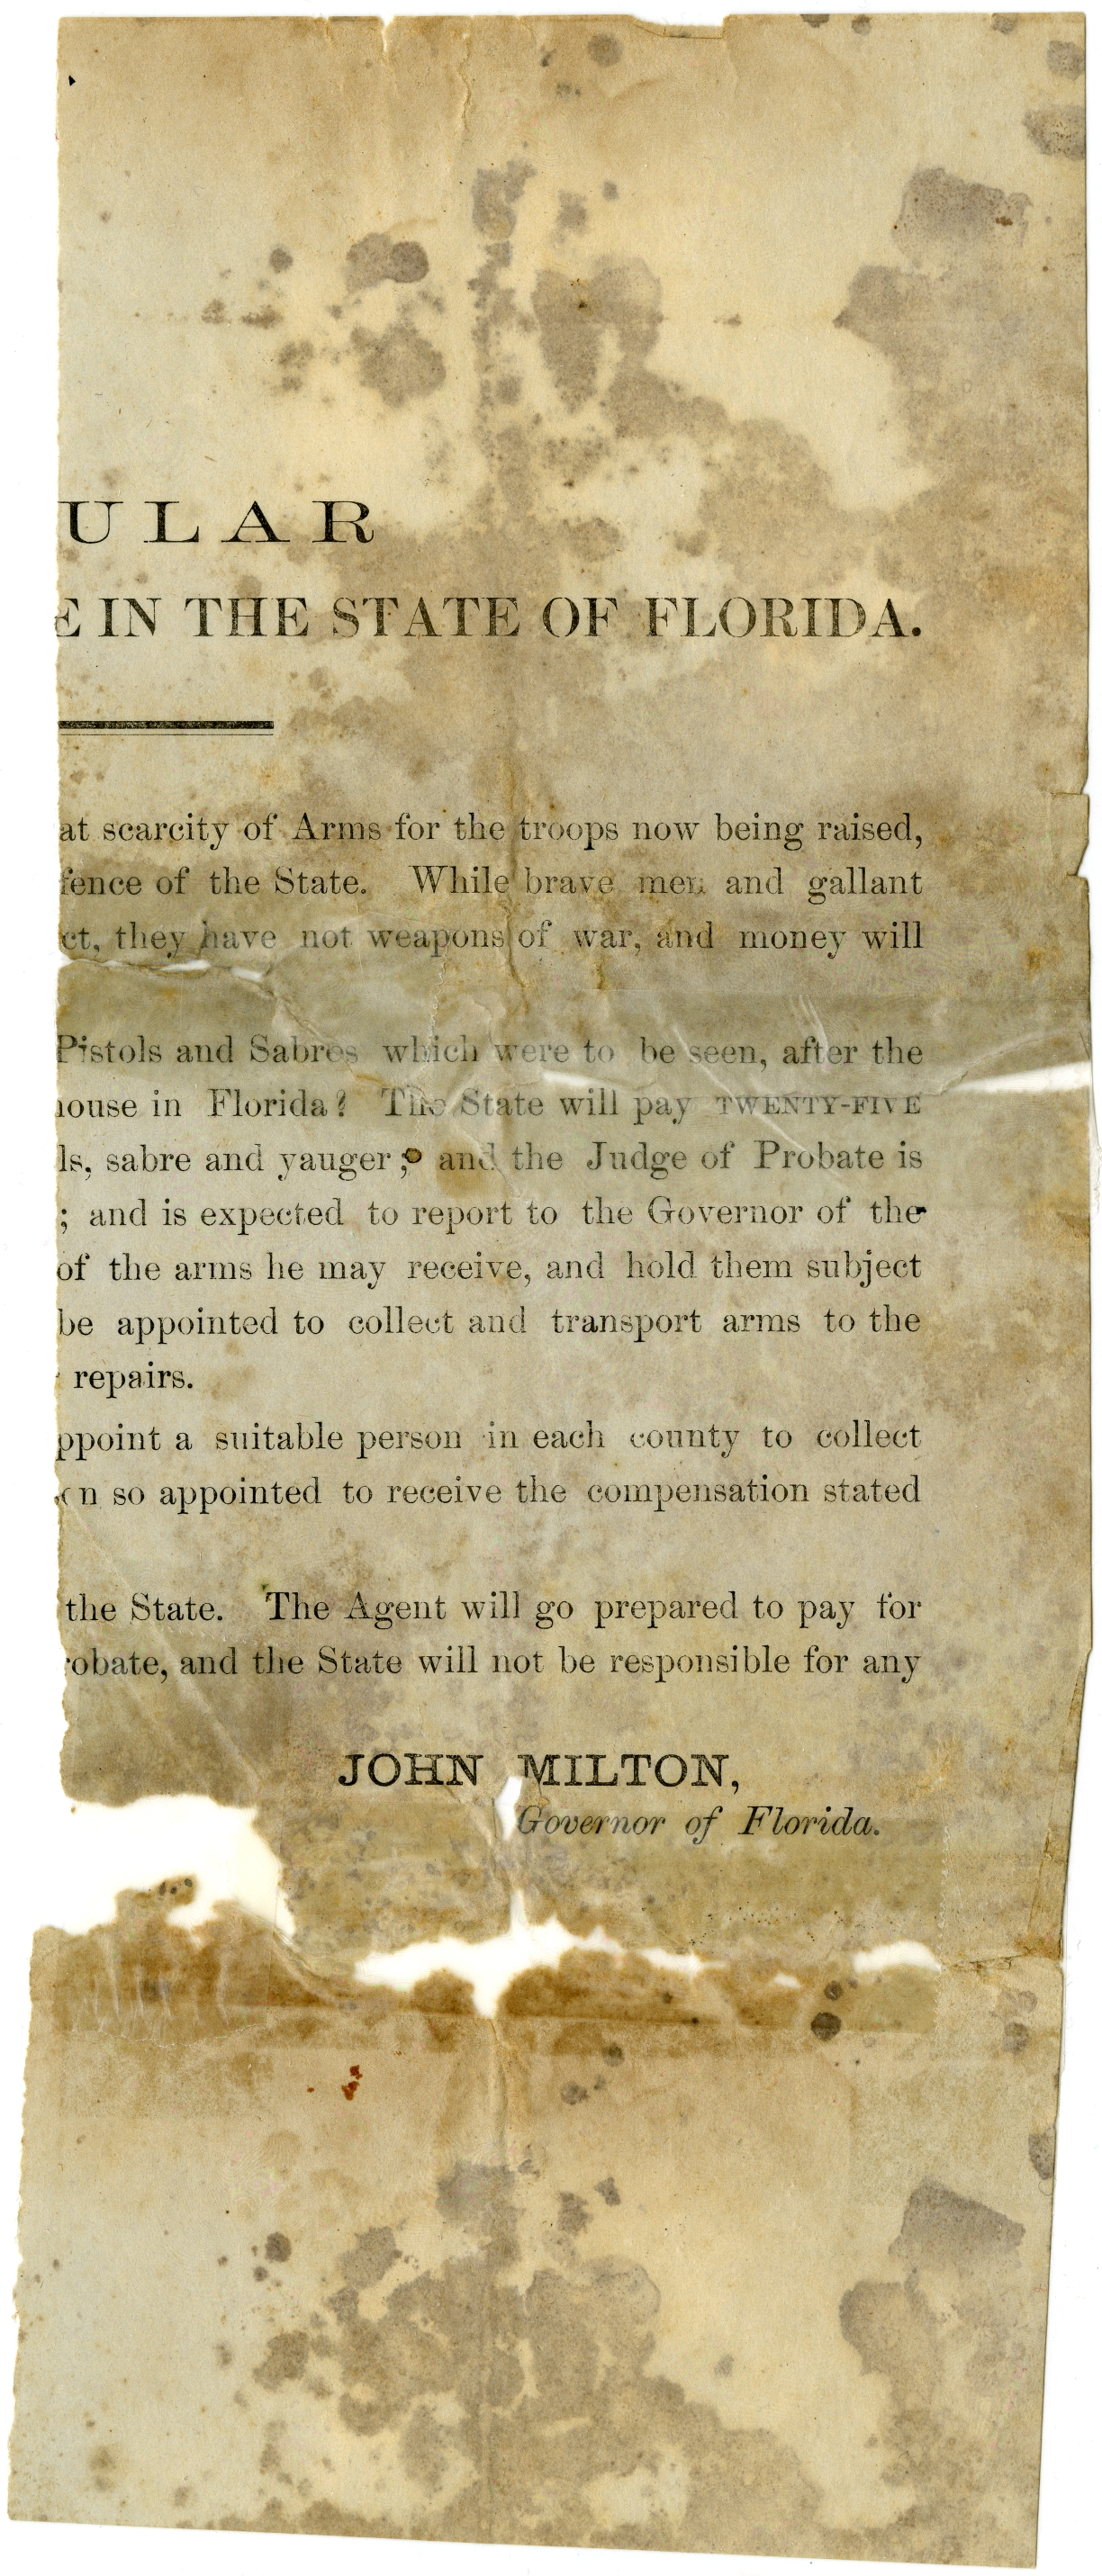 Scarcity of arms in Florida and reimbursement to troops.